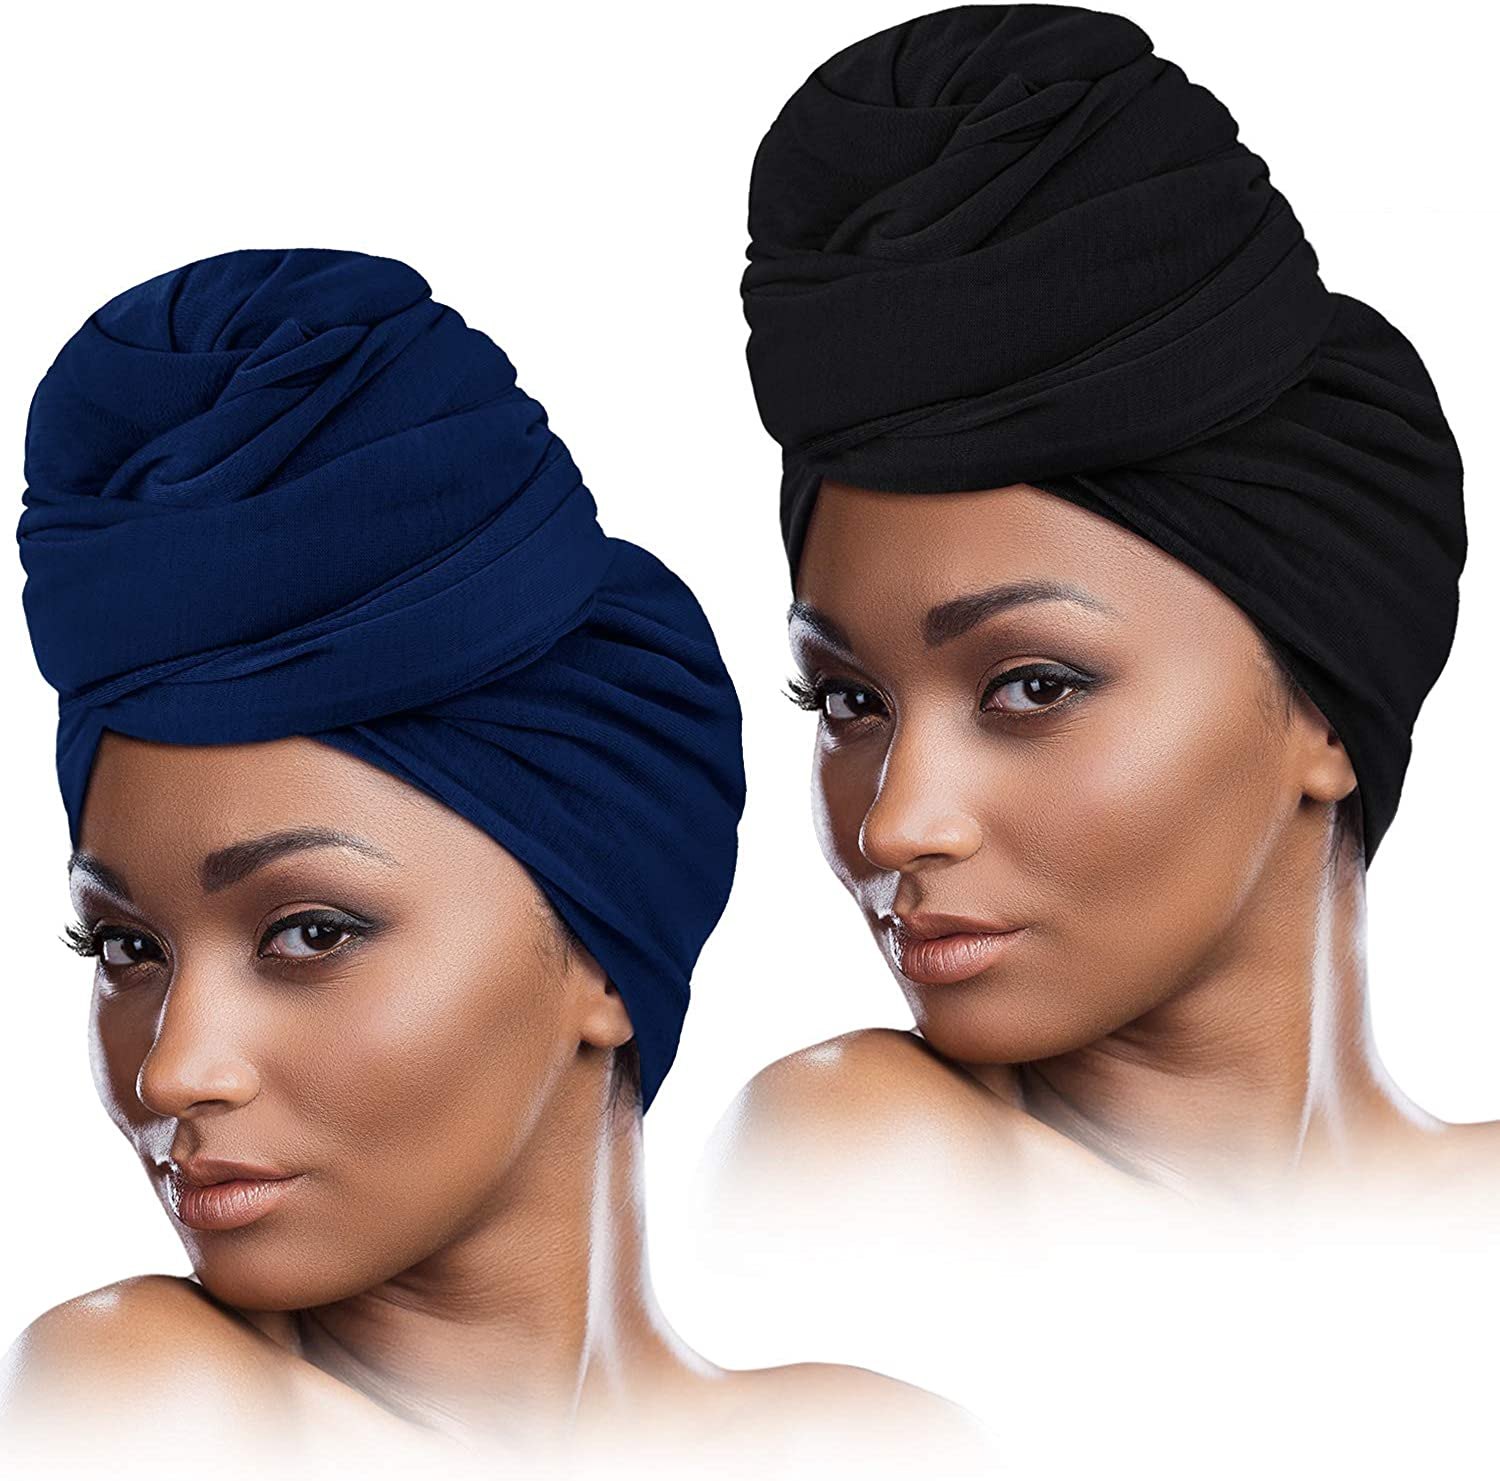 store 2 Pieces Stretch Head Excellent Wrap Stretchy Long Scarf Hair Turban